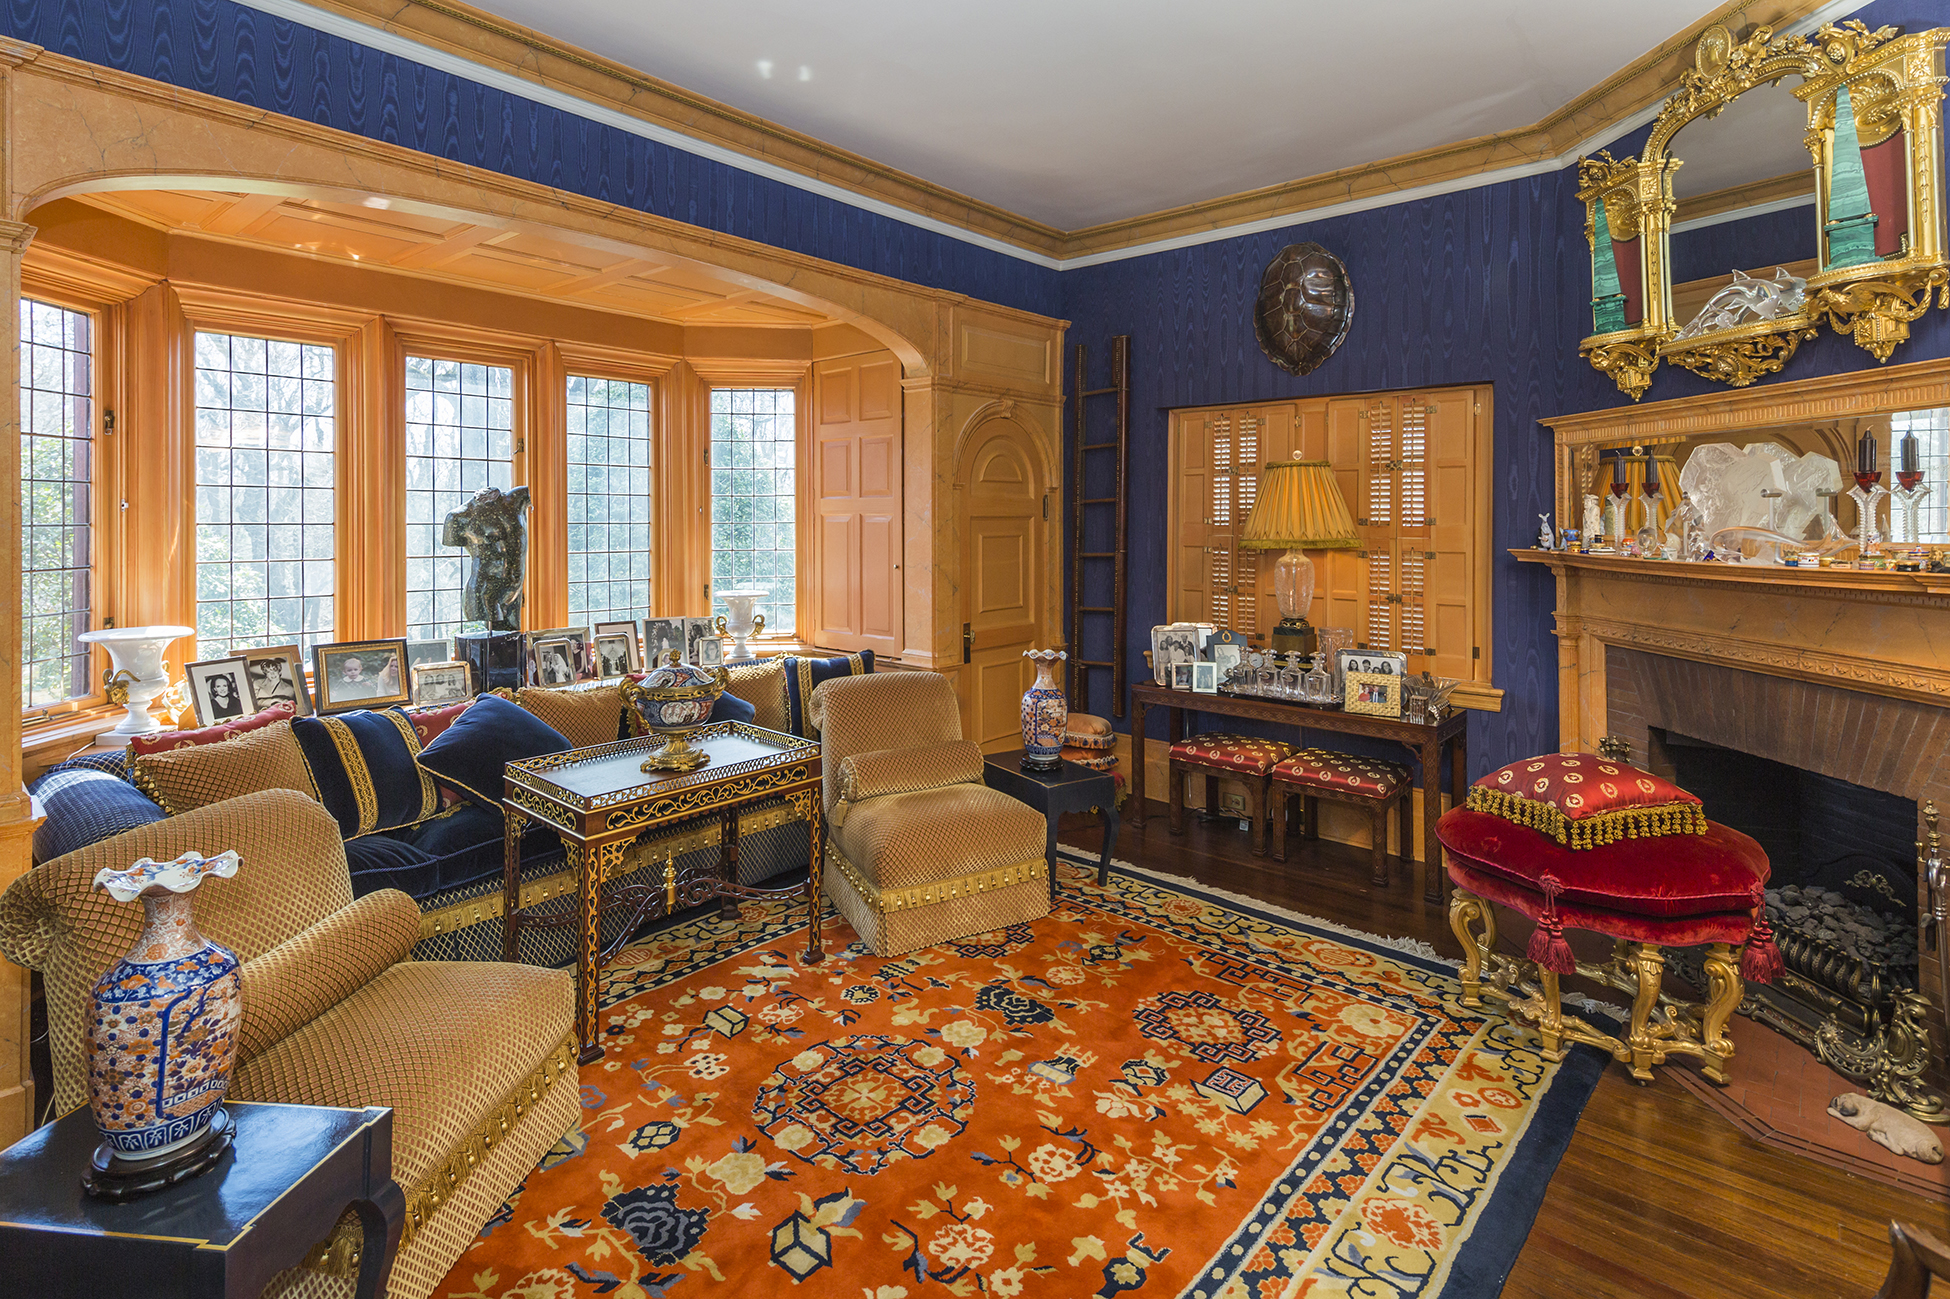 Additional photo for property listing at Great Warmth Amid Turn-of-the-Century Ambiance 2 Constitution Hill East Princeton, Nueva Jersey 08540 Estados Unidos